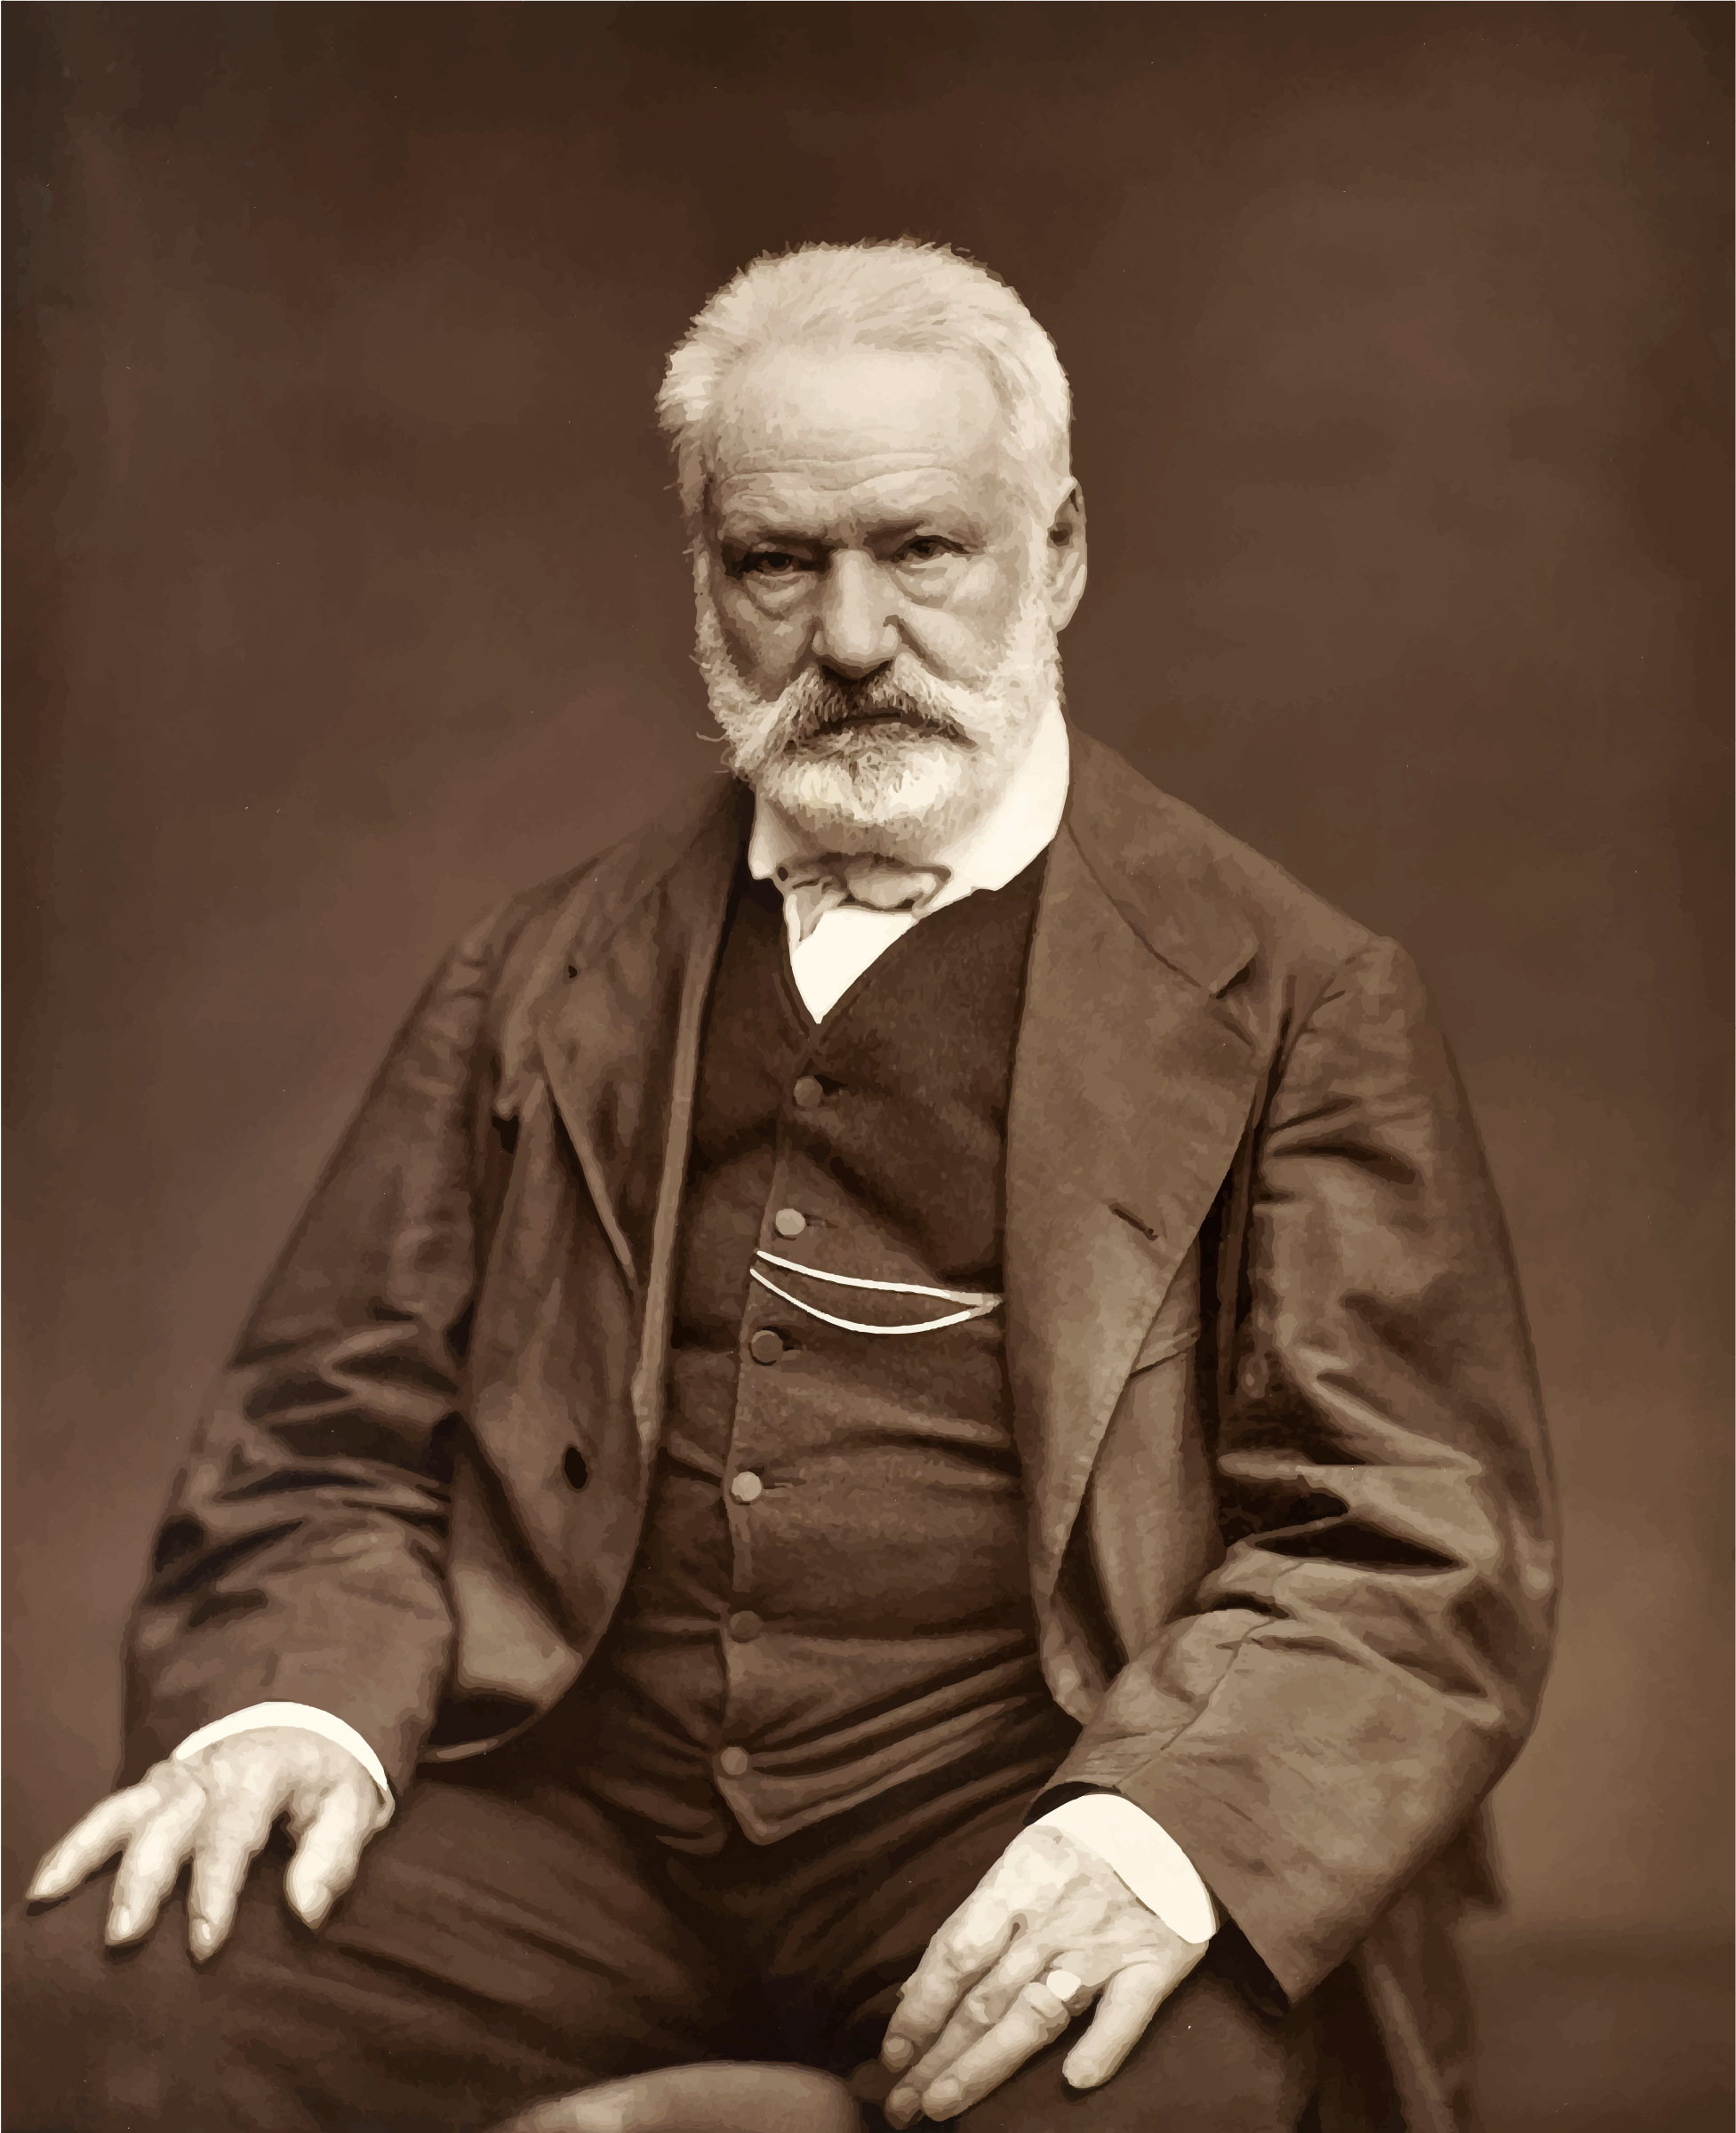 Victor Hugo Portrait By Etienne Carjat 1876 by GDJ